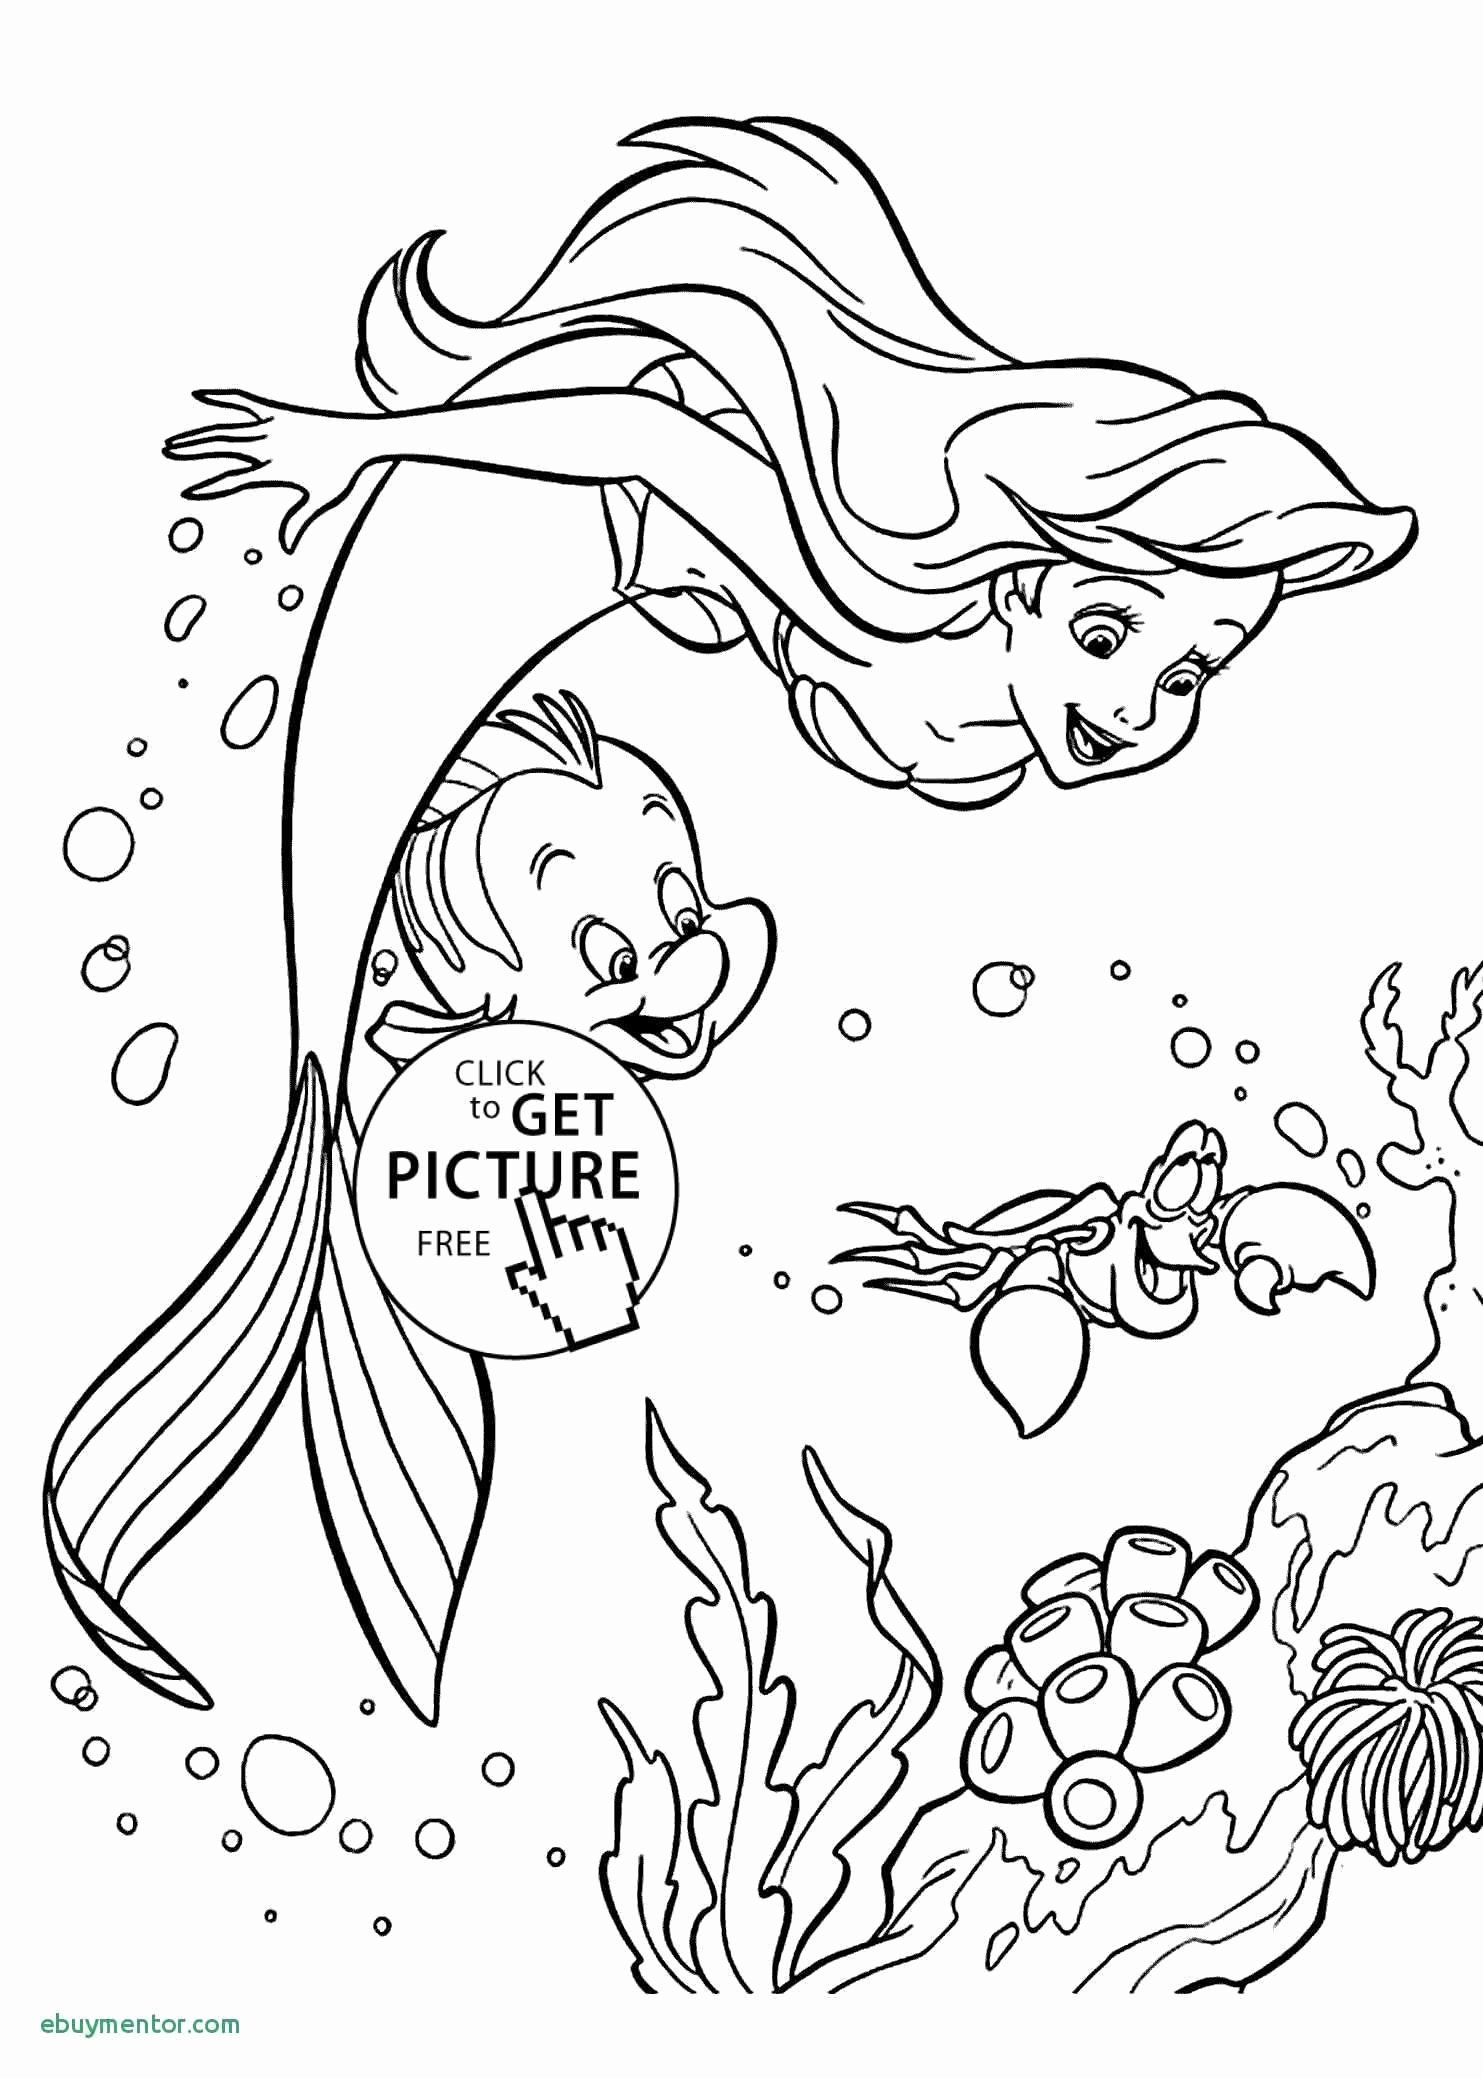 Coloring Cartoon Characters Pdf Awesome Coloring Ideas Superhero Coloring Pages Pdf In 2020 Mermaid Coloring Book Ariel Coloring Pages Mermaid Coloring Pages